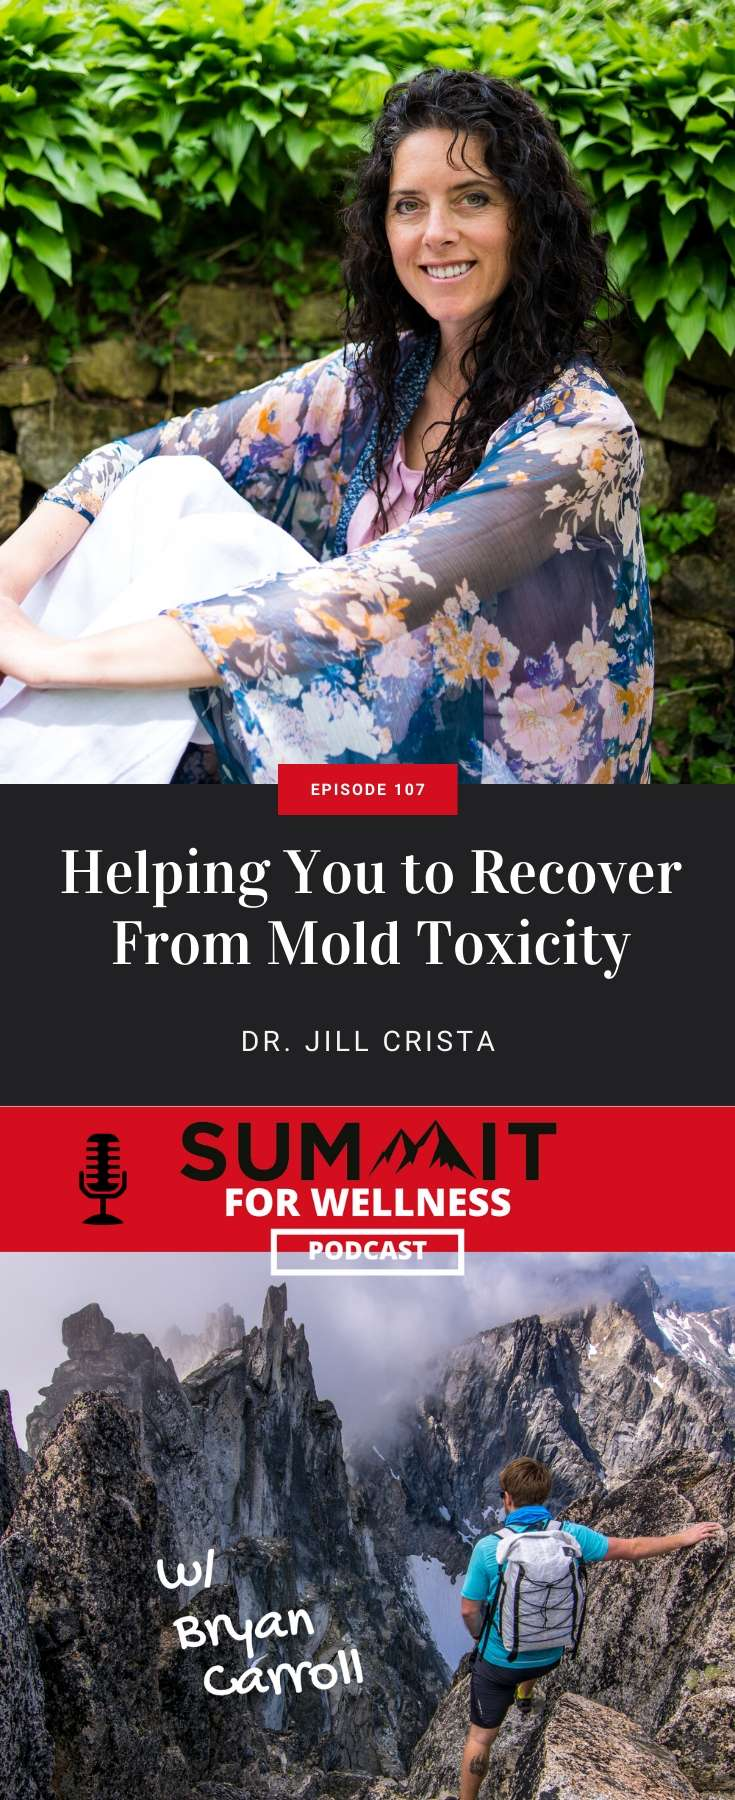 Dr. Jill Crista walks us through steps to recover from mold toxicity